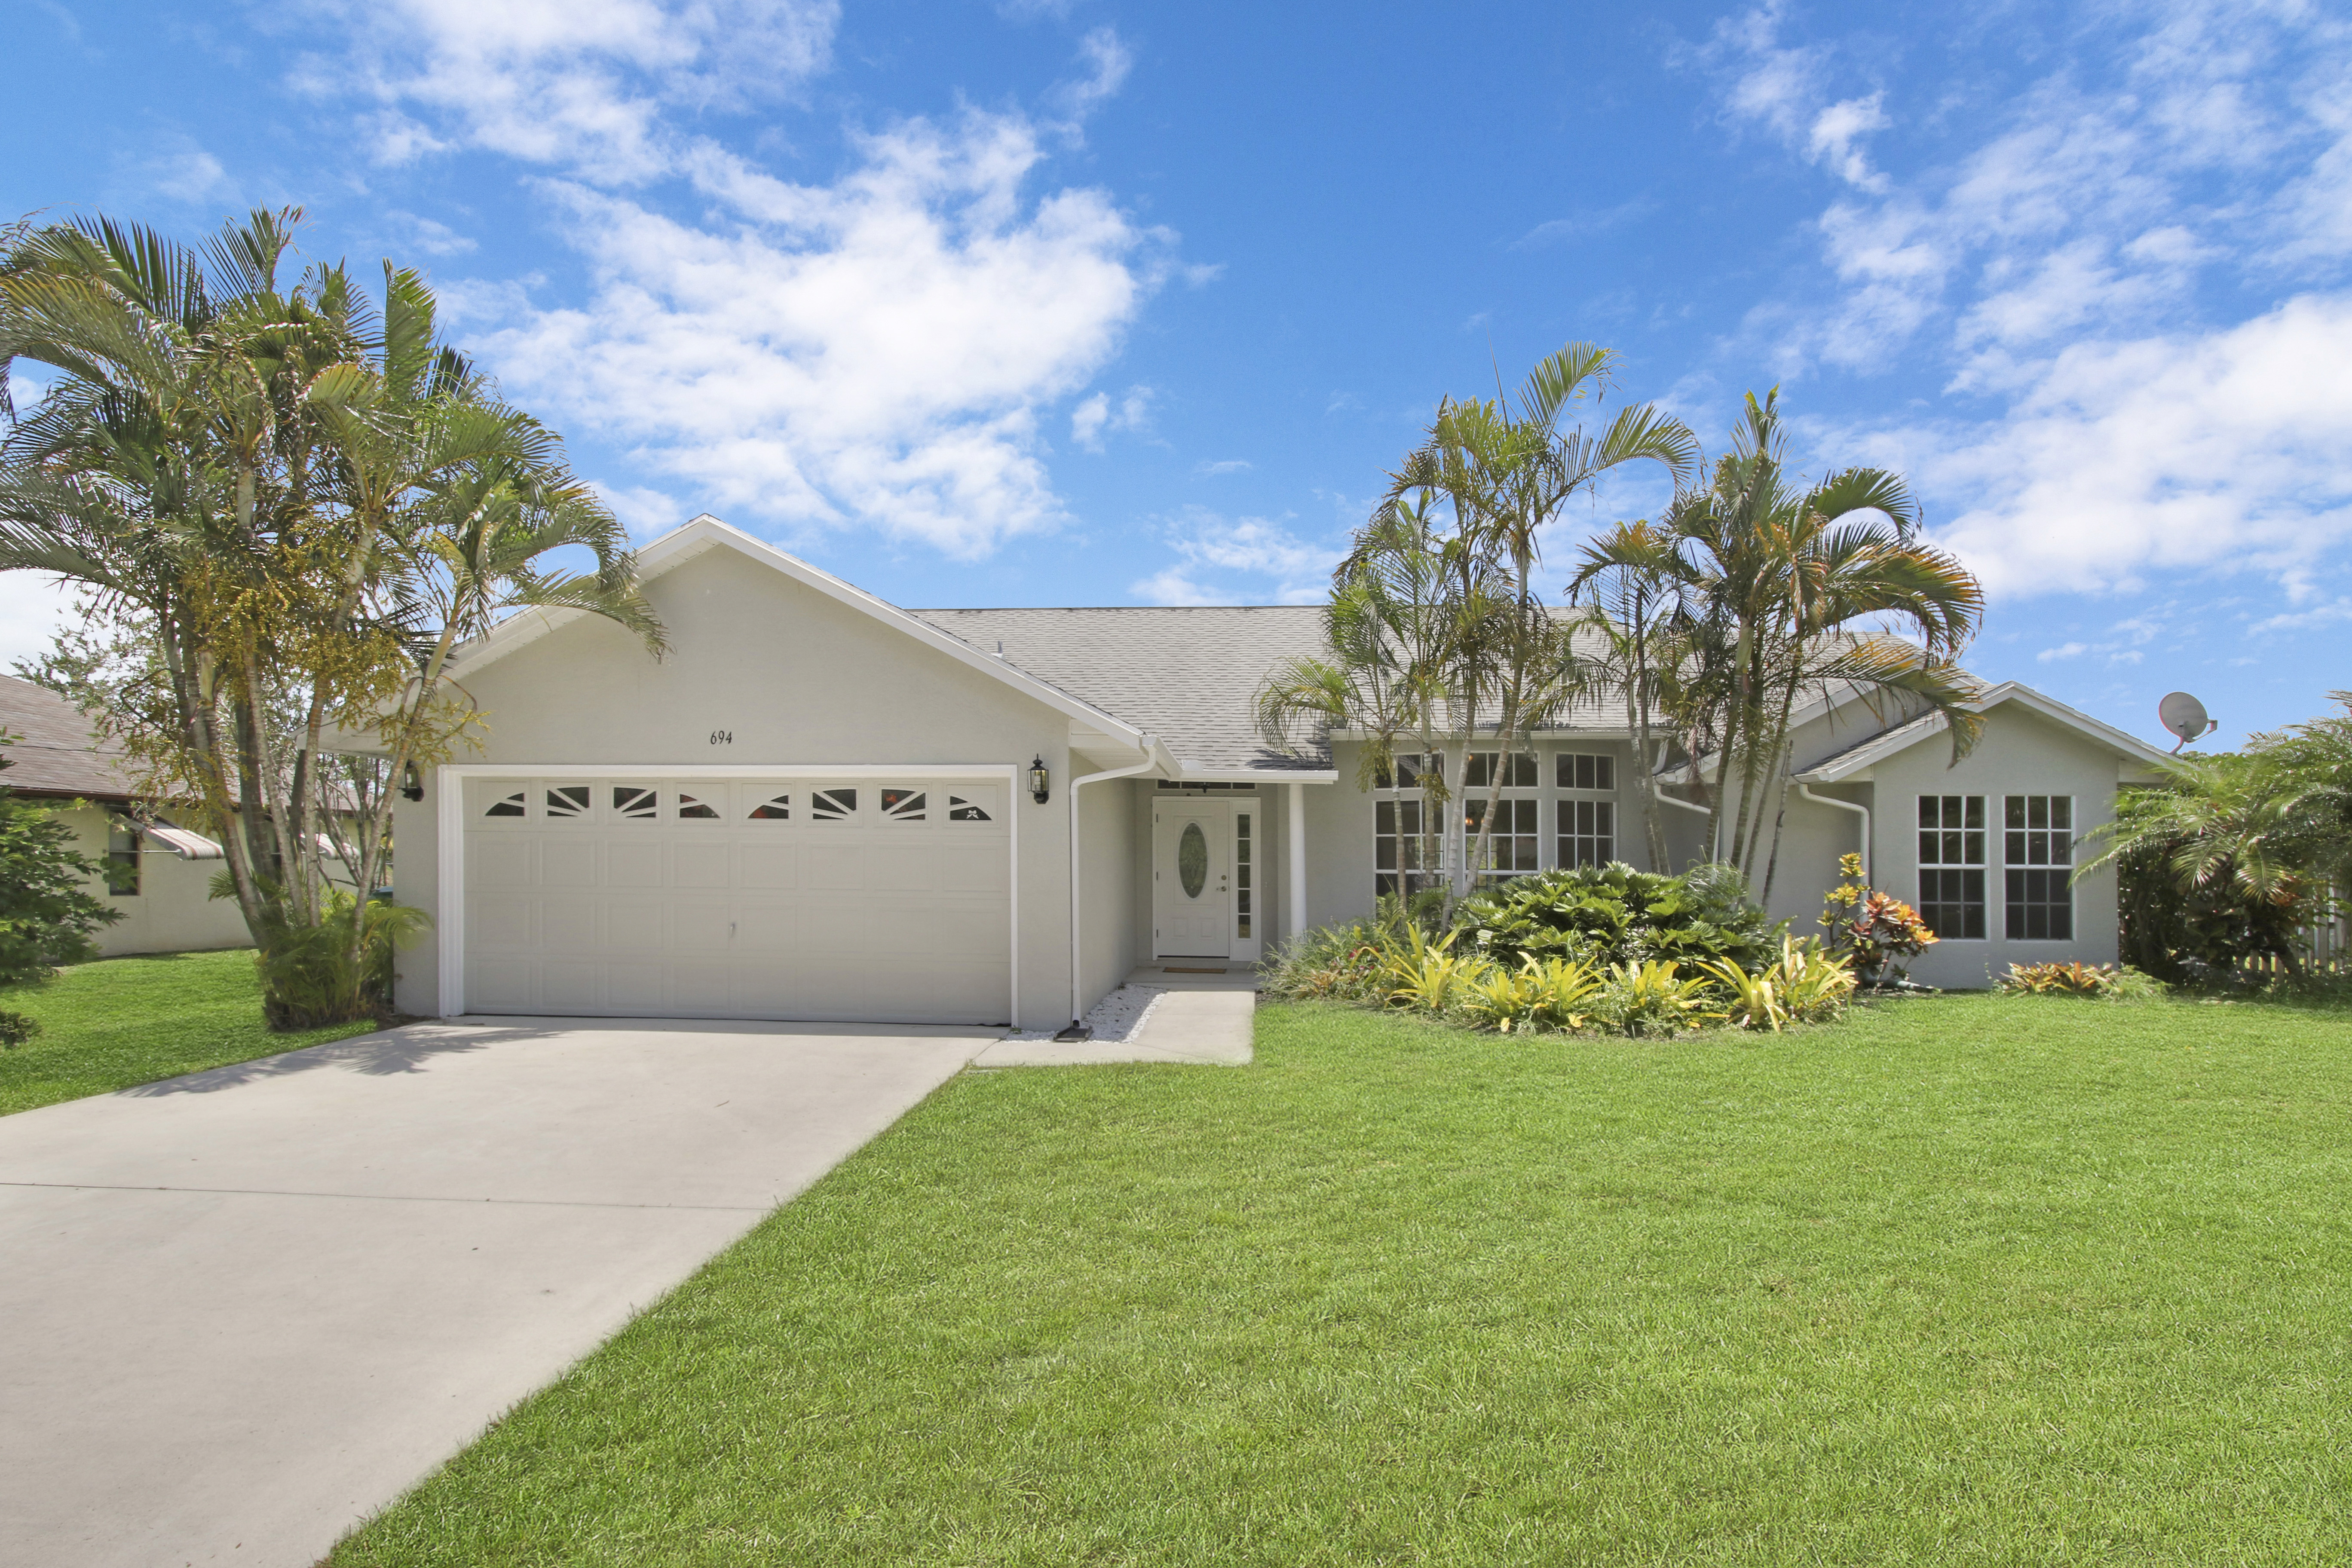 Just Listed: Stunning & Completely Renovated Home in Port St Lucie